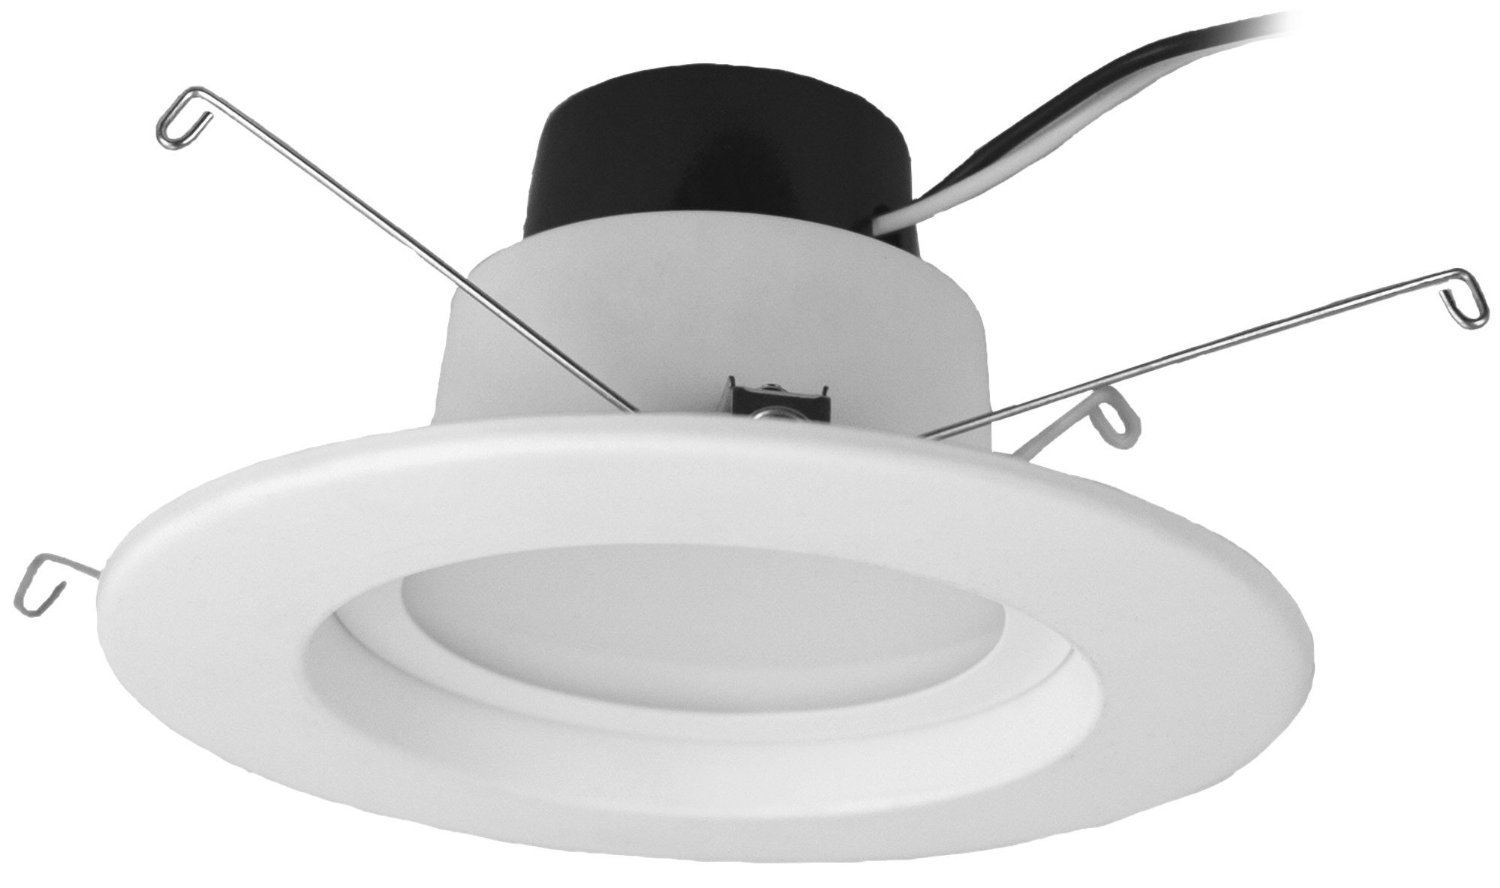 TECHNICAL CONSUMER PRODUCTS LED10DR430K TCP Led Retrofit Downlight Fits 4 In. Can Light, Dimmable, Medium Base, 620 Lumens, 3000K, 10W - 2467068,